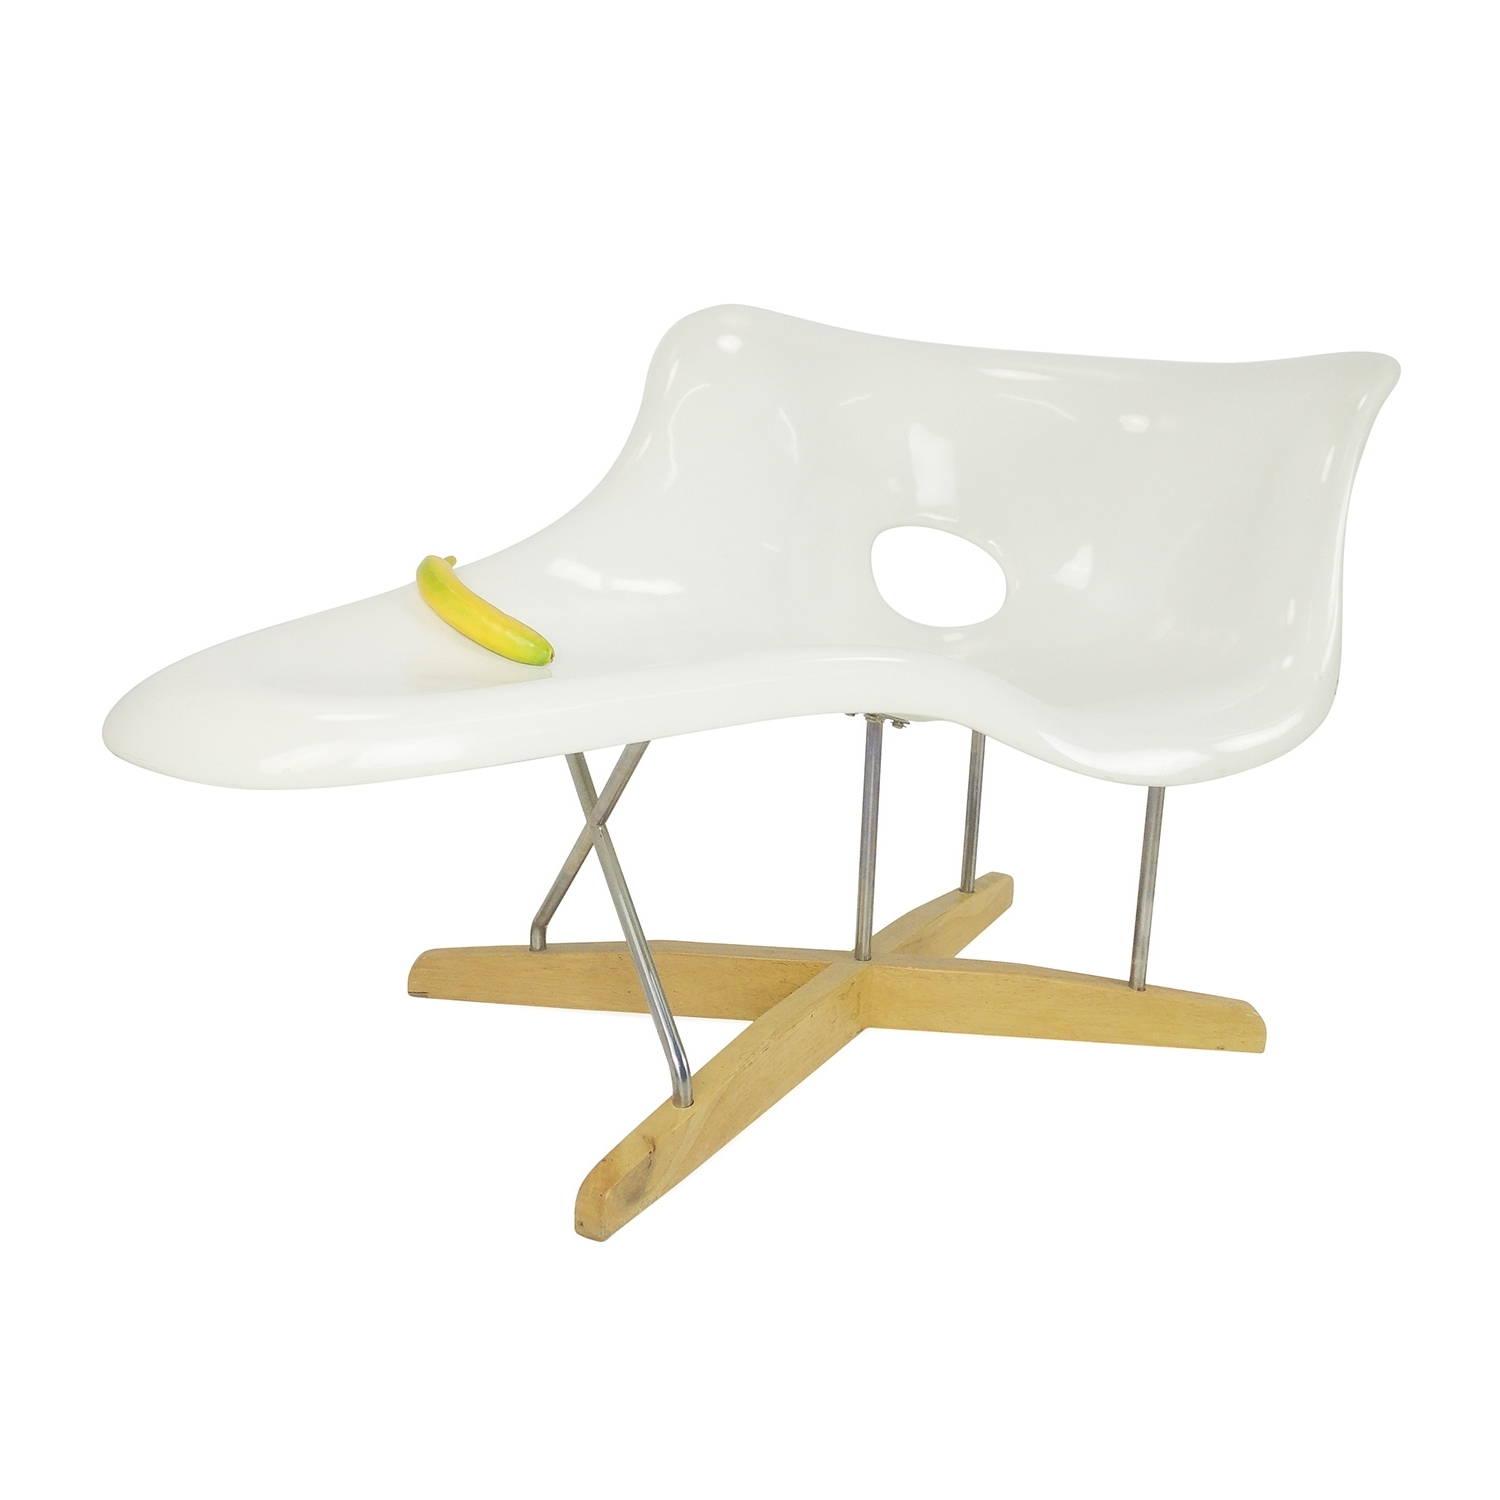 [%63% Off – Eames Replica Of La Chaise La Chaise Replica Lounge Pertaining To Well Liked Eames Chaises|Eames Chaises With Famous 63% Off – Eames Replica Of La Chaise La Chaise Replica Lounge|Favorite Eames Chaises Pertaining To 63% Off – Eames Replica Of La Chaise La Chaise Replica Lounge|Preferred 63% Off – Eames Replica Of La Chaise La Chaise Replica Lounge For Eames Chaises%] (View 1 of 15)